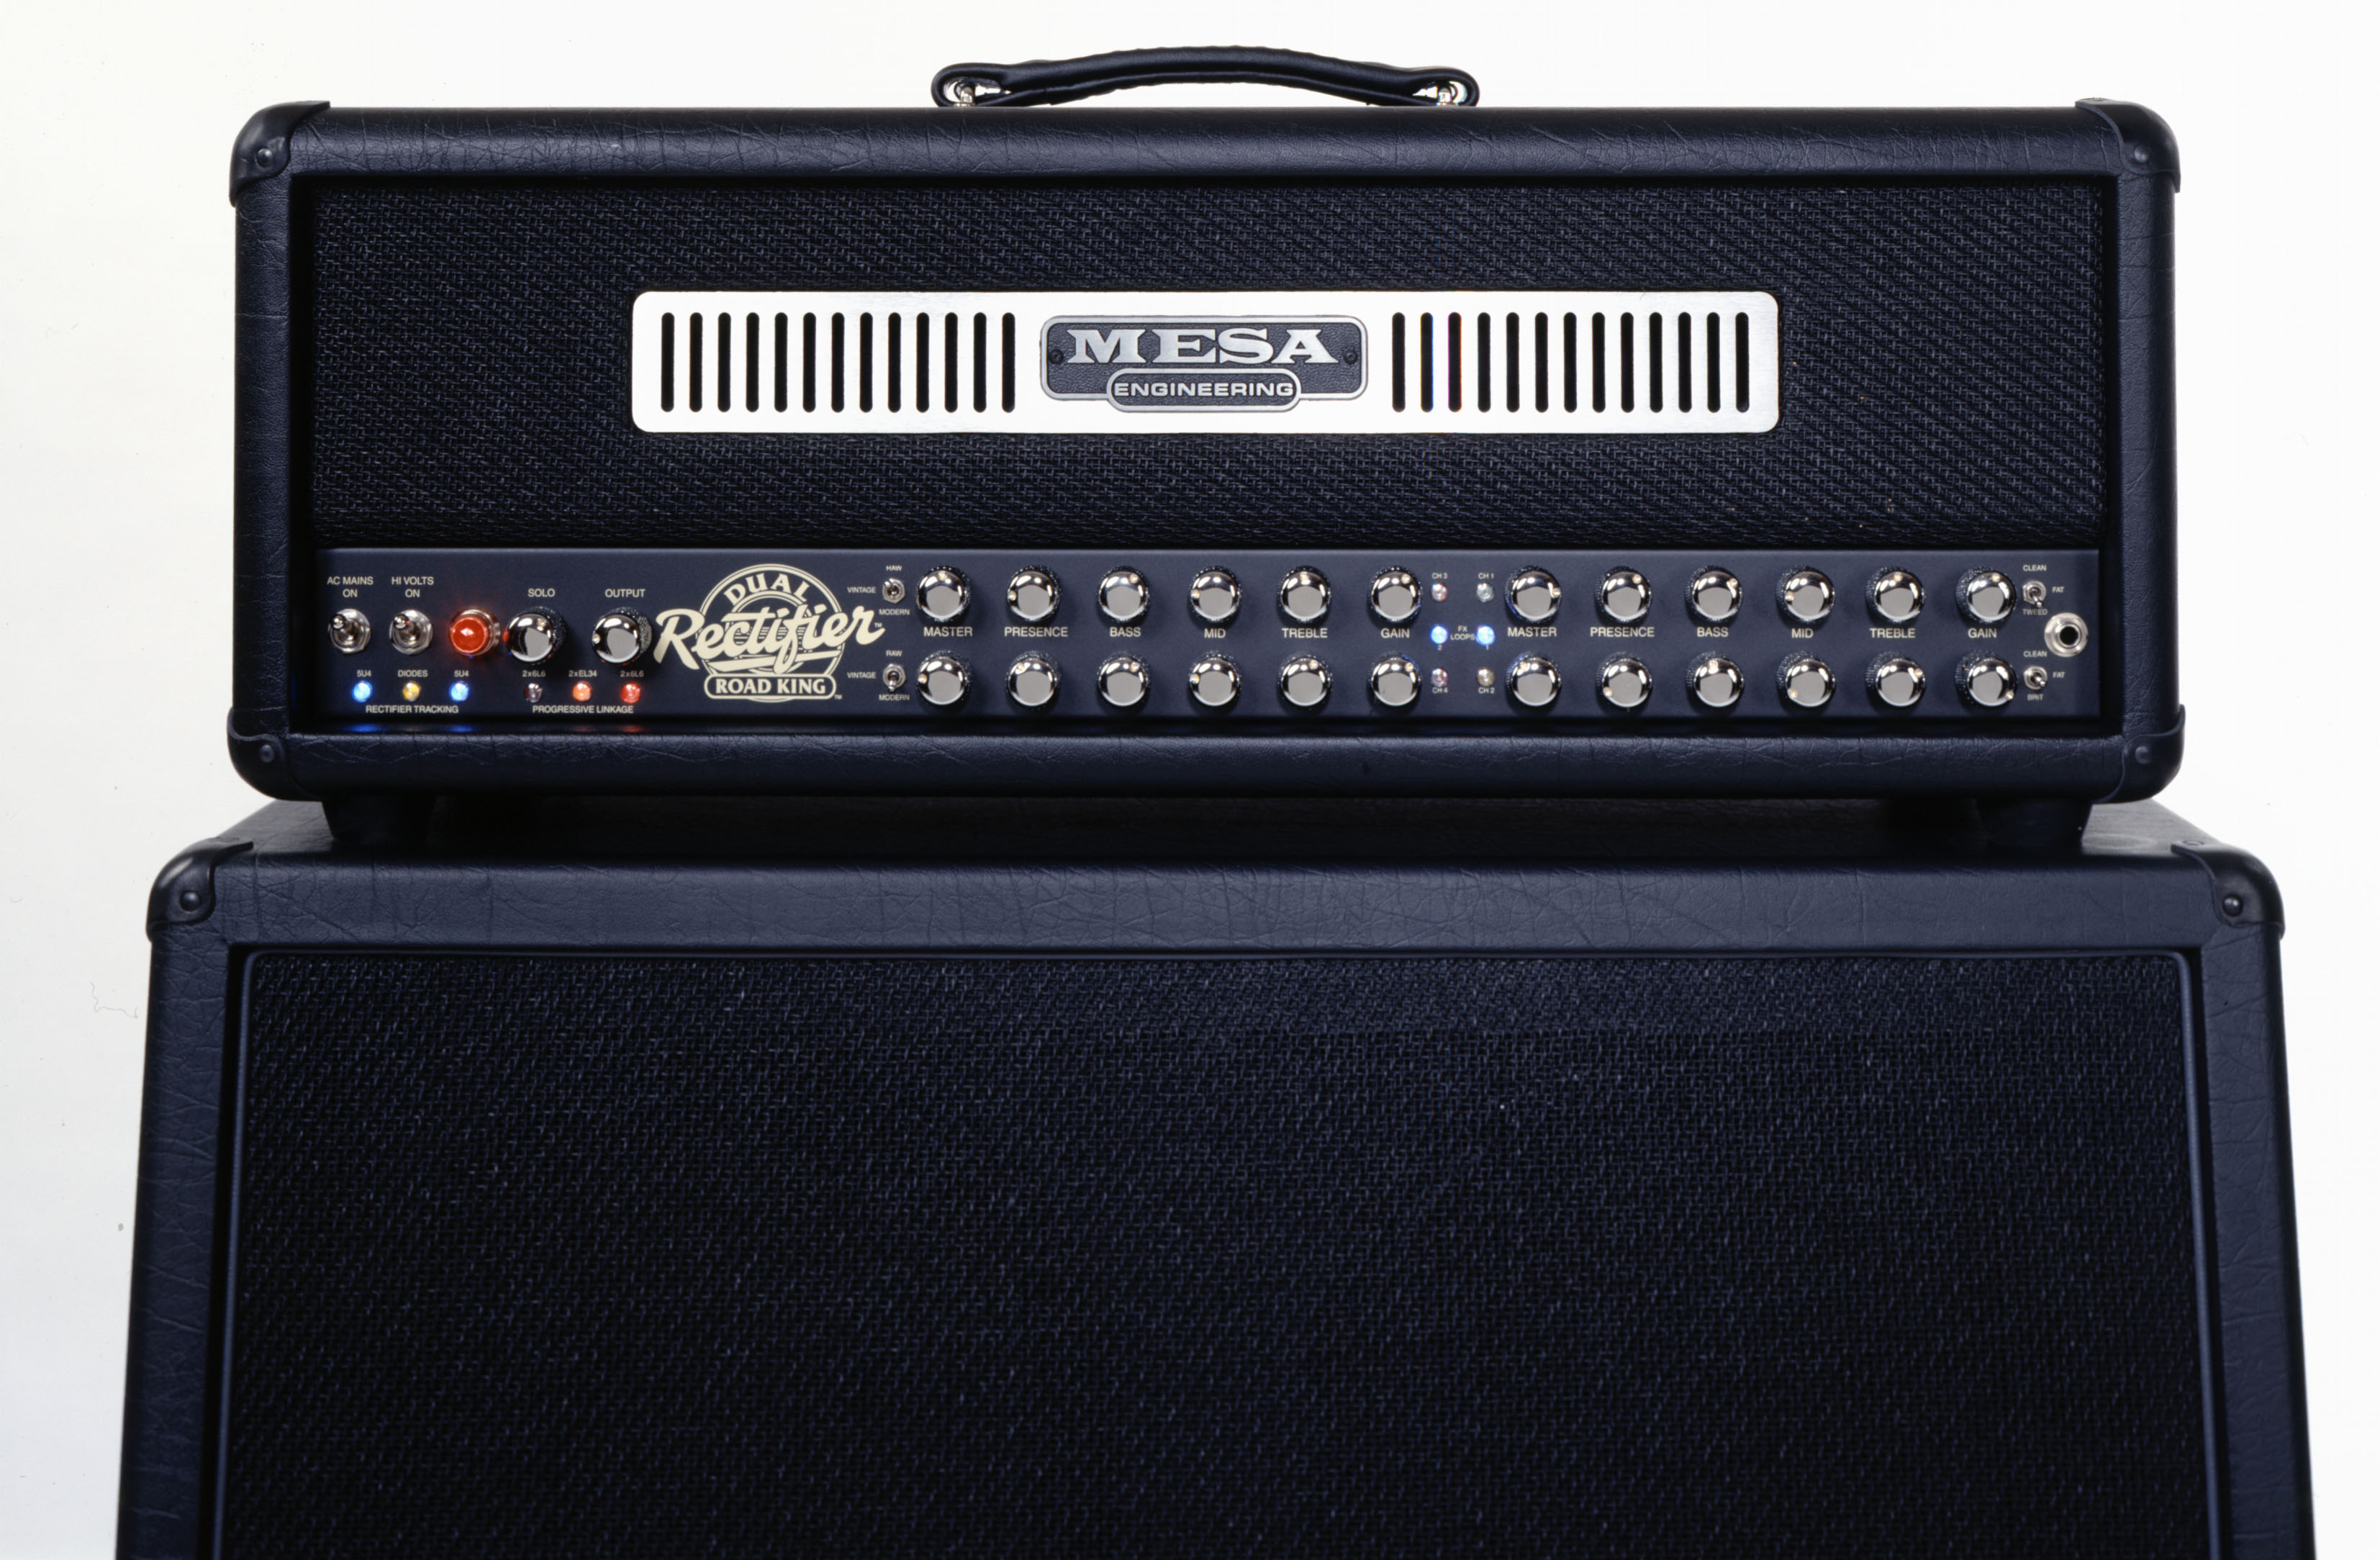 Mesa Boogie RoadKing V2 Long & McQuade Musical Instruments